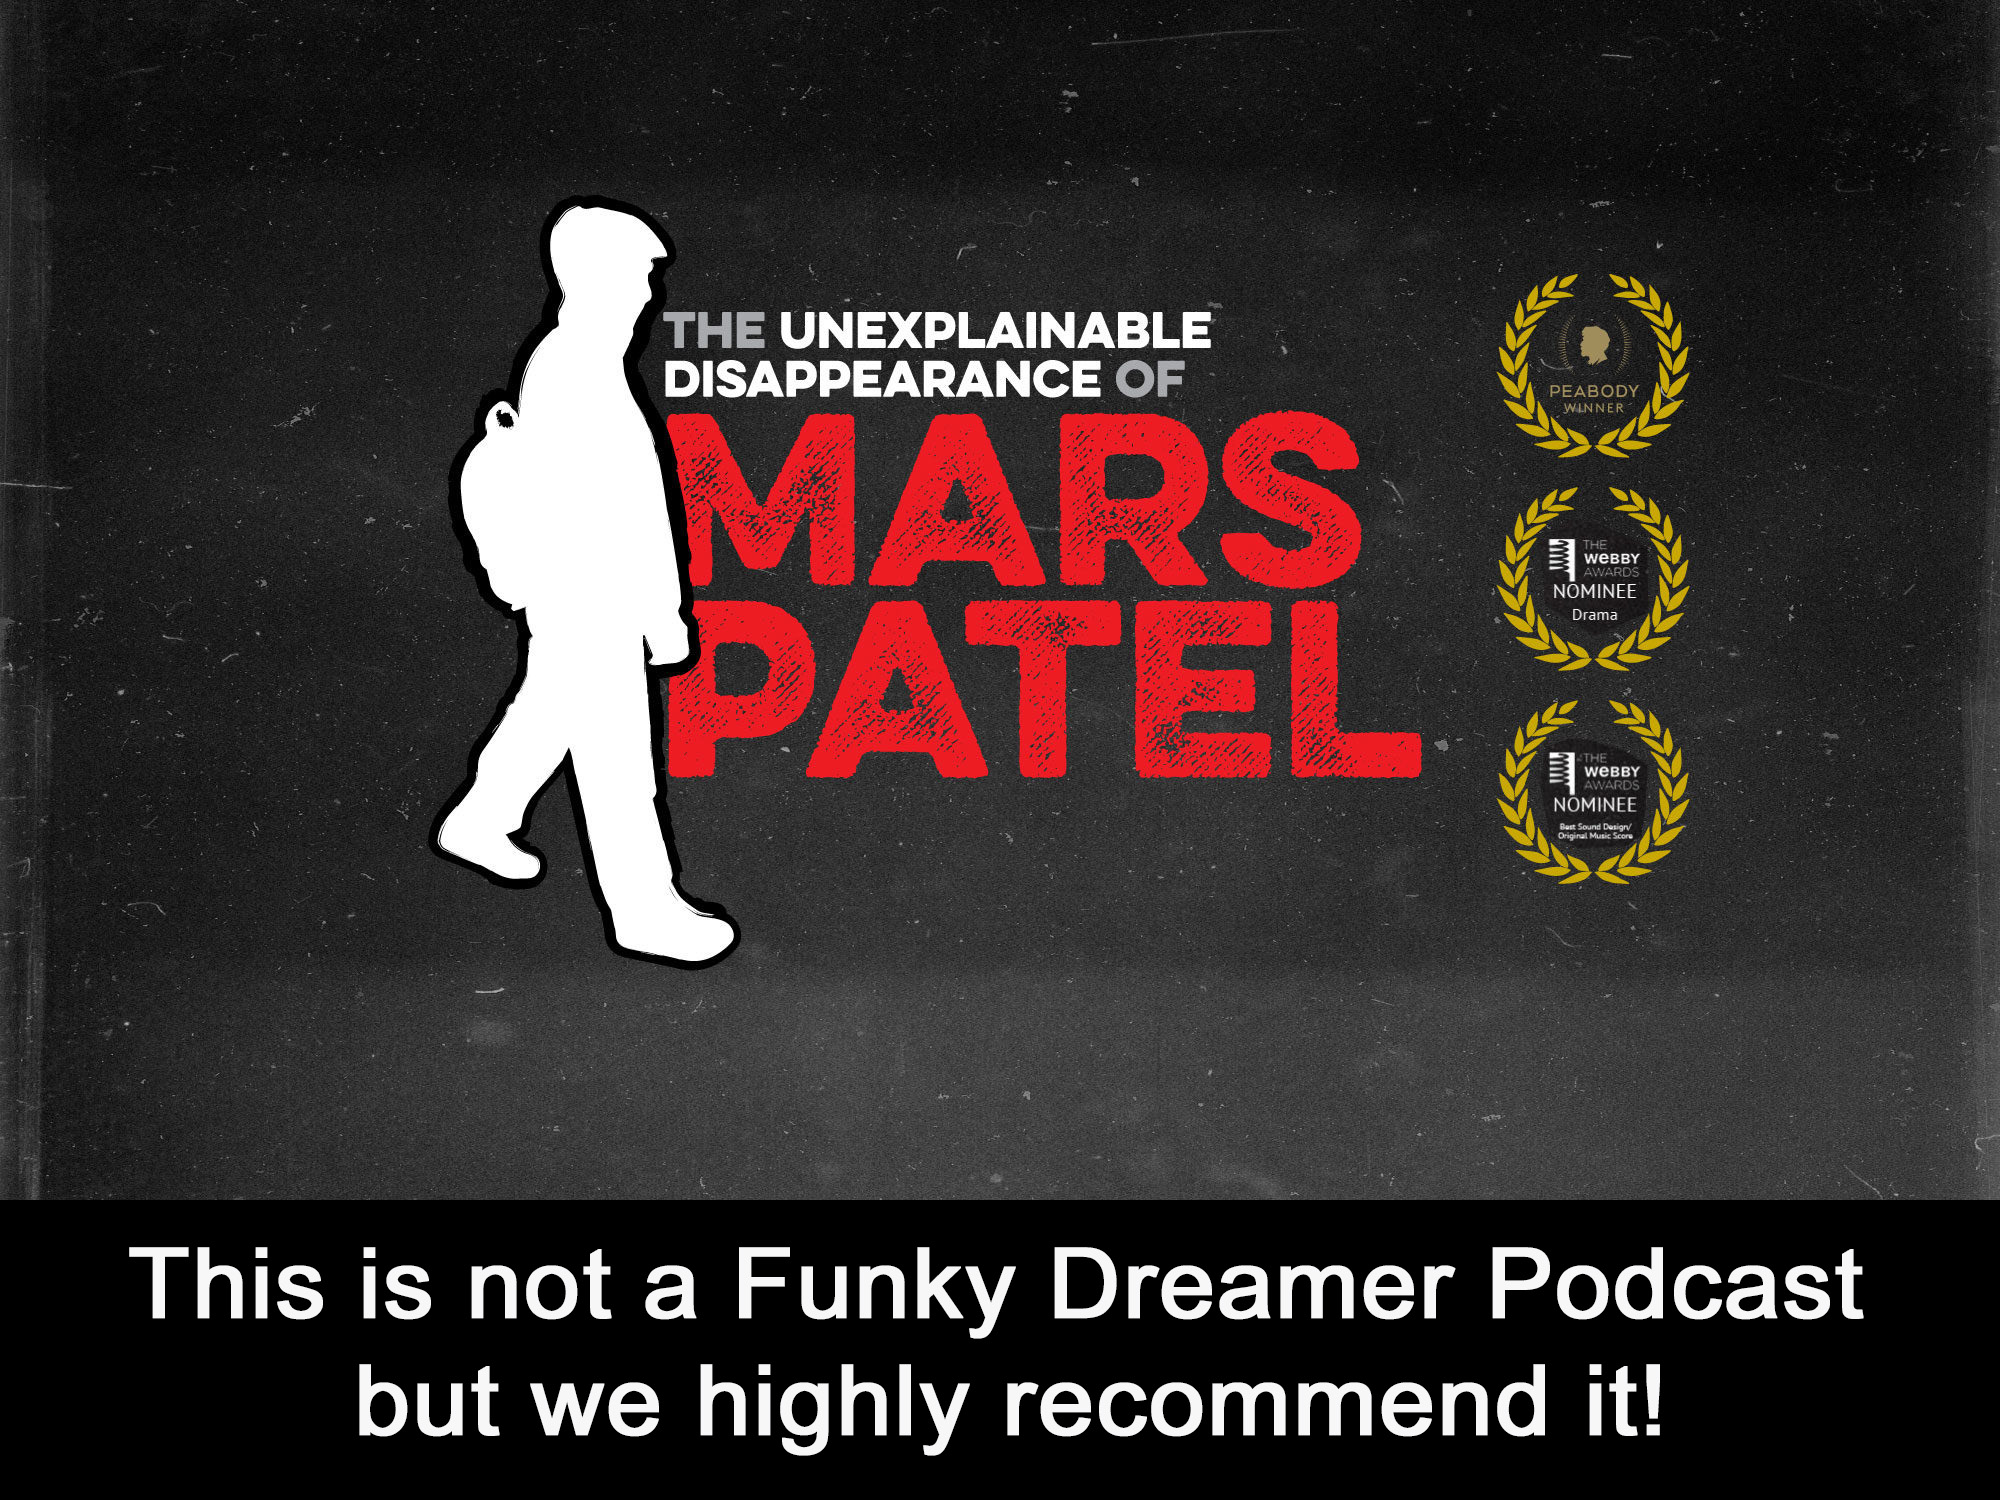 The Unexplainable Disappearance of Mars Patel.website.jpg